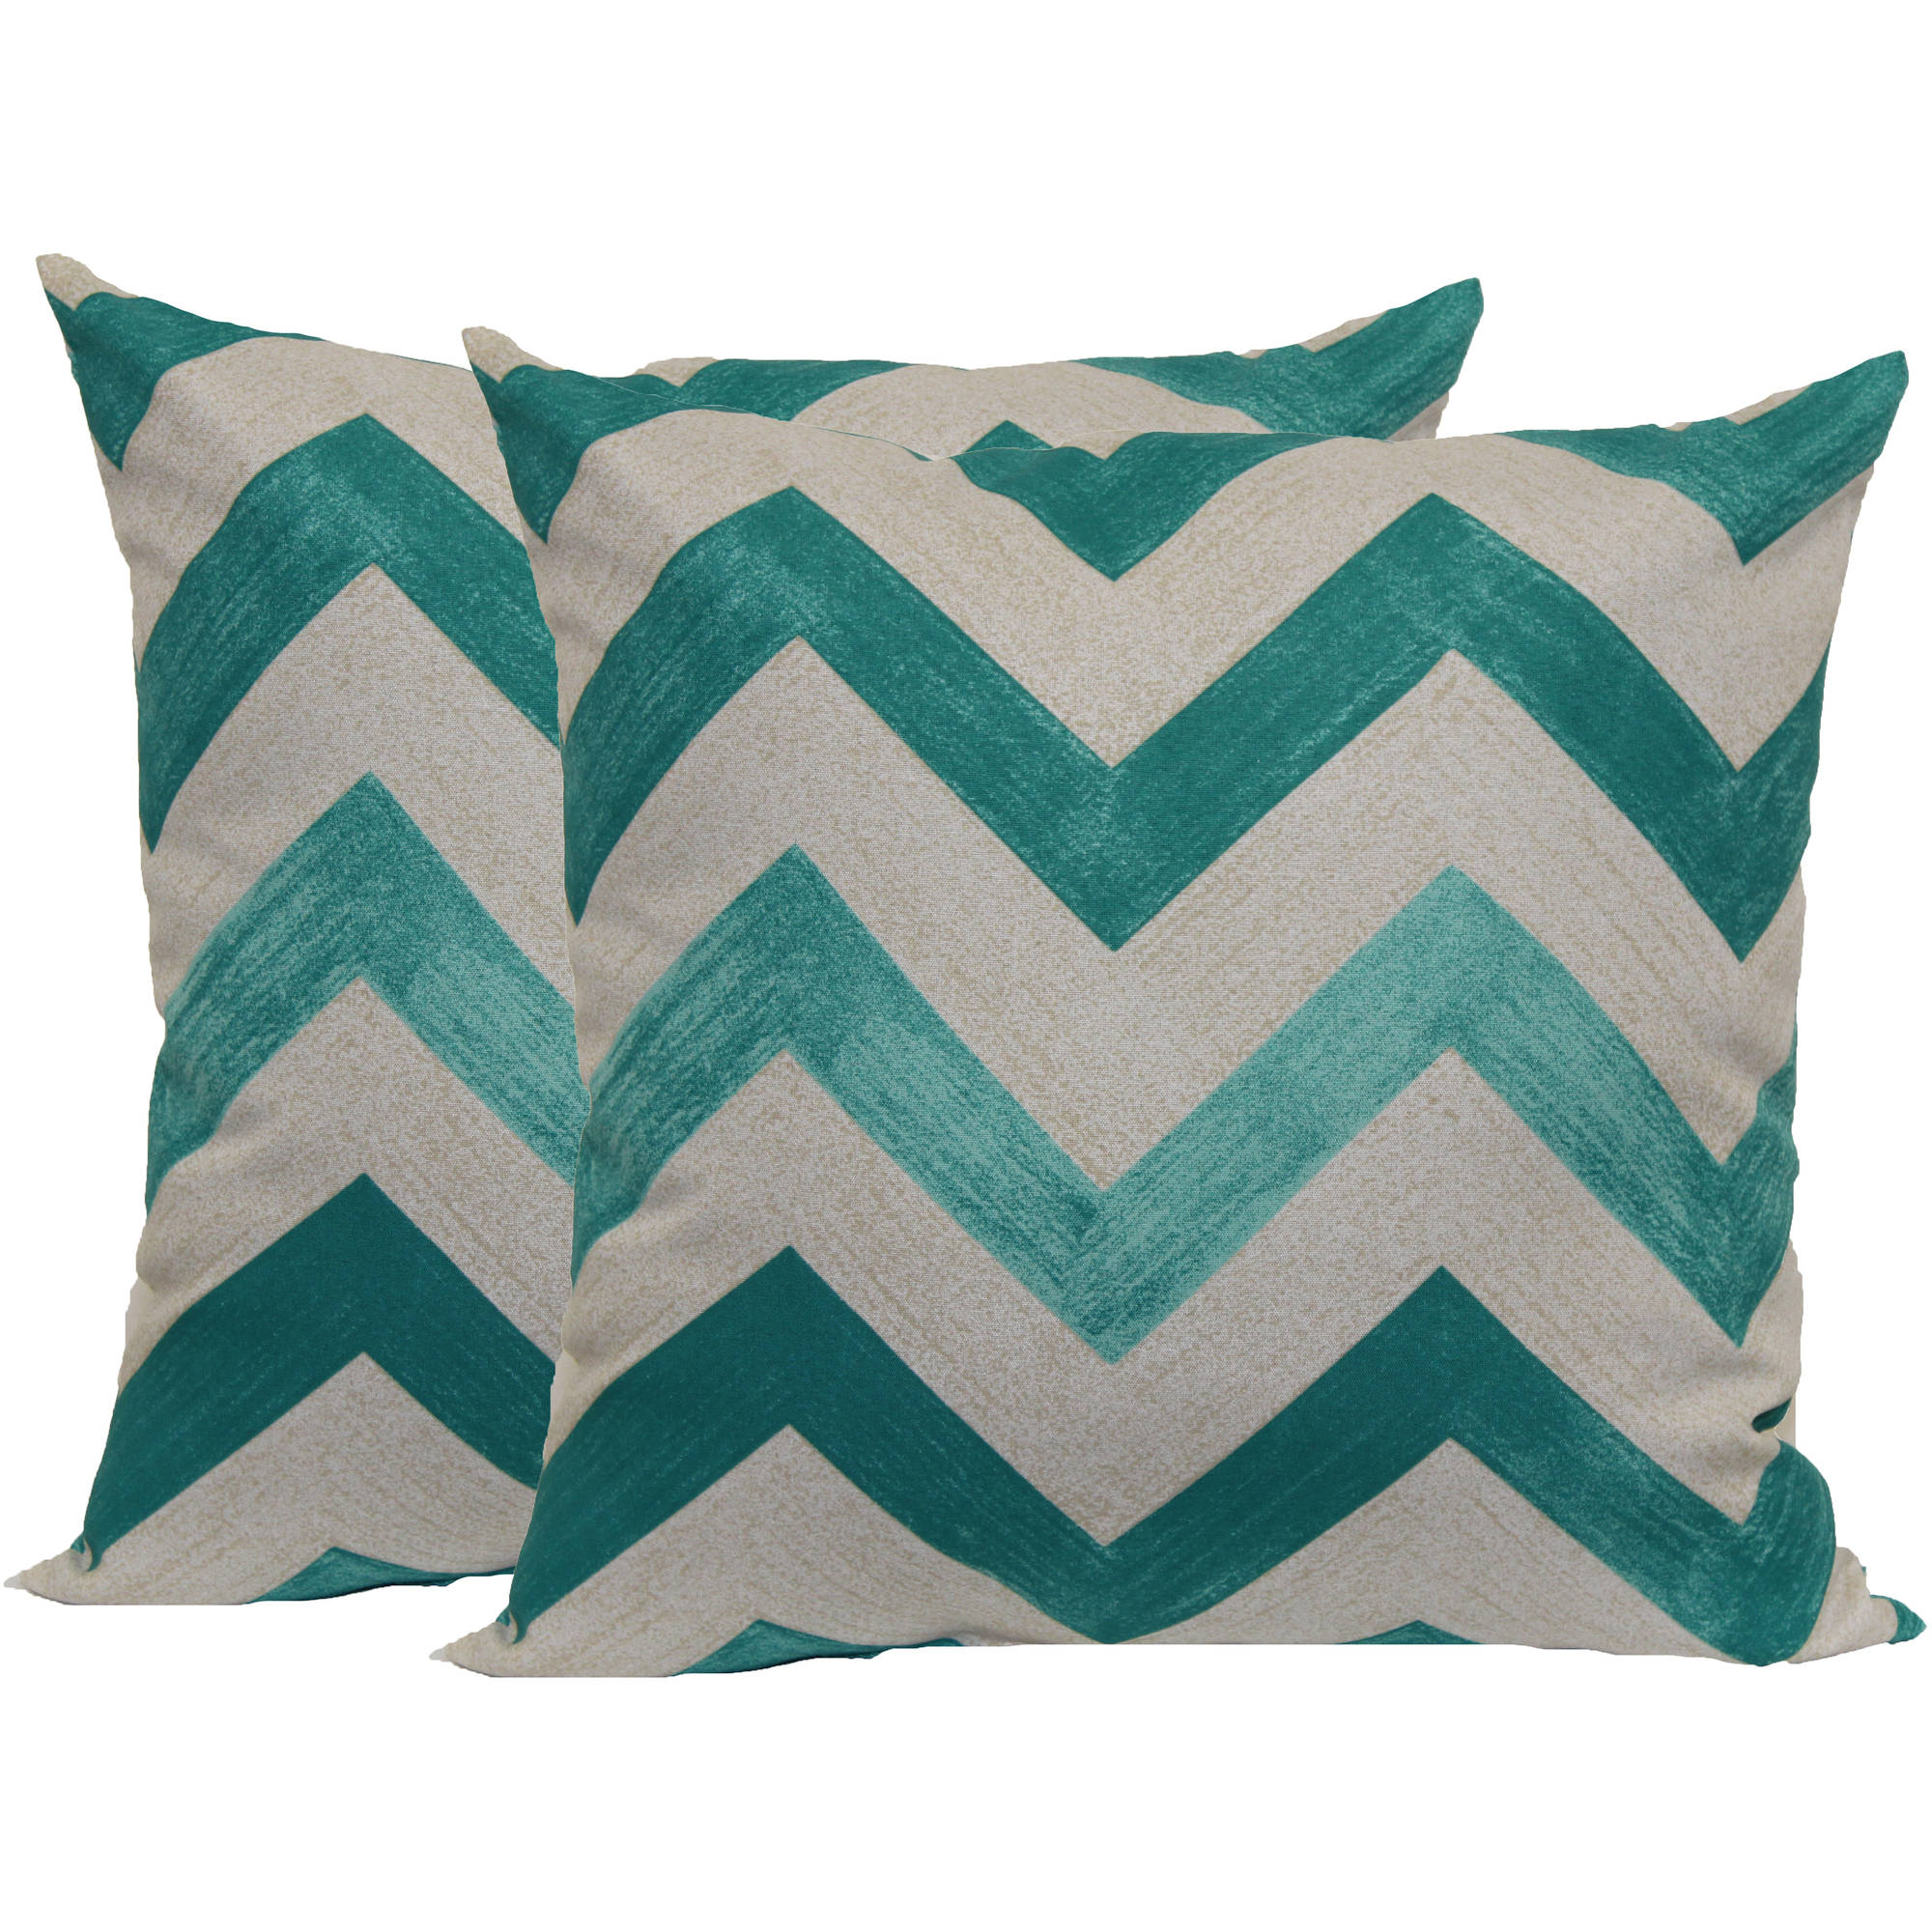 Mainstays Teal Chevron Toss Pillow, 2-Pack